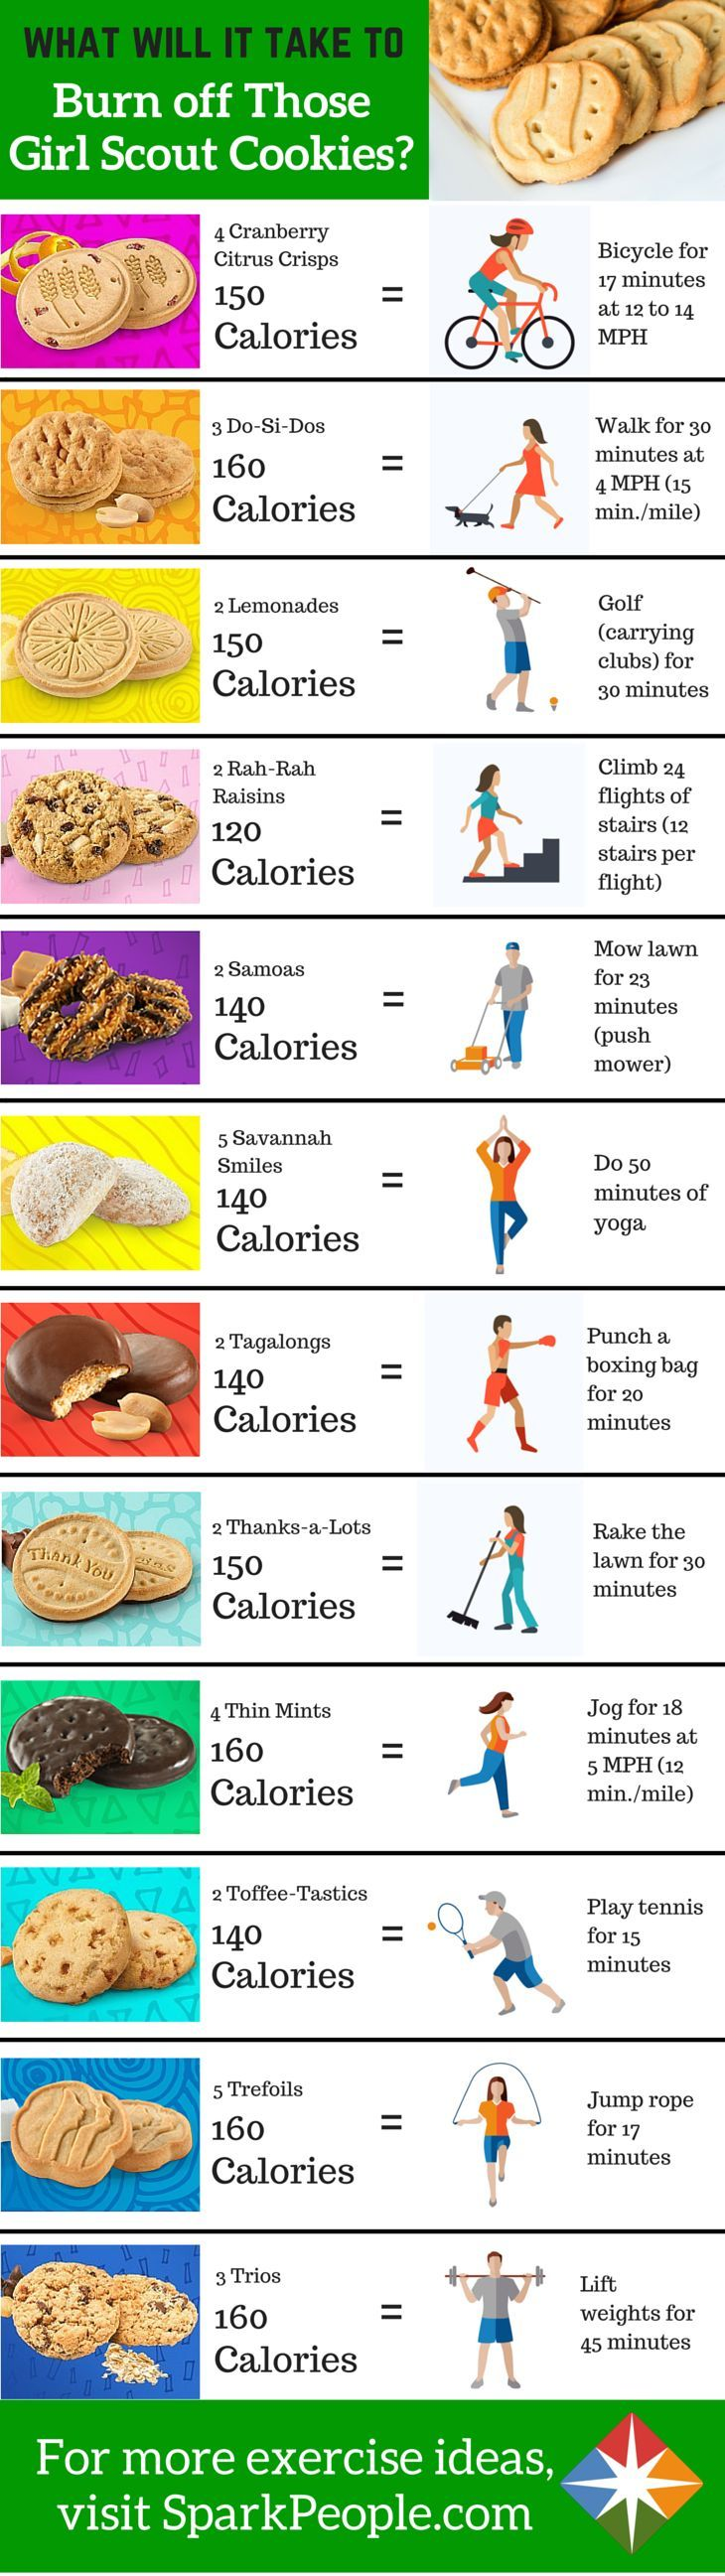 Burn it to earn it: The Girl Scout Cookie Edition. How many minutes of cycling or yoga do you have to do to burn off those Thin Mints or Samoas?